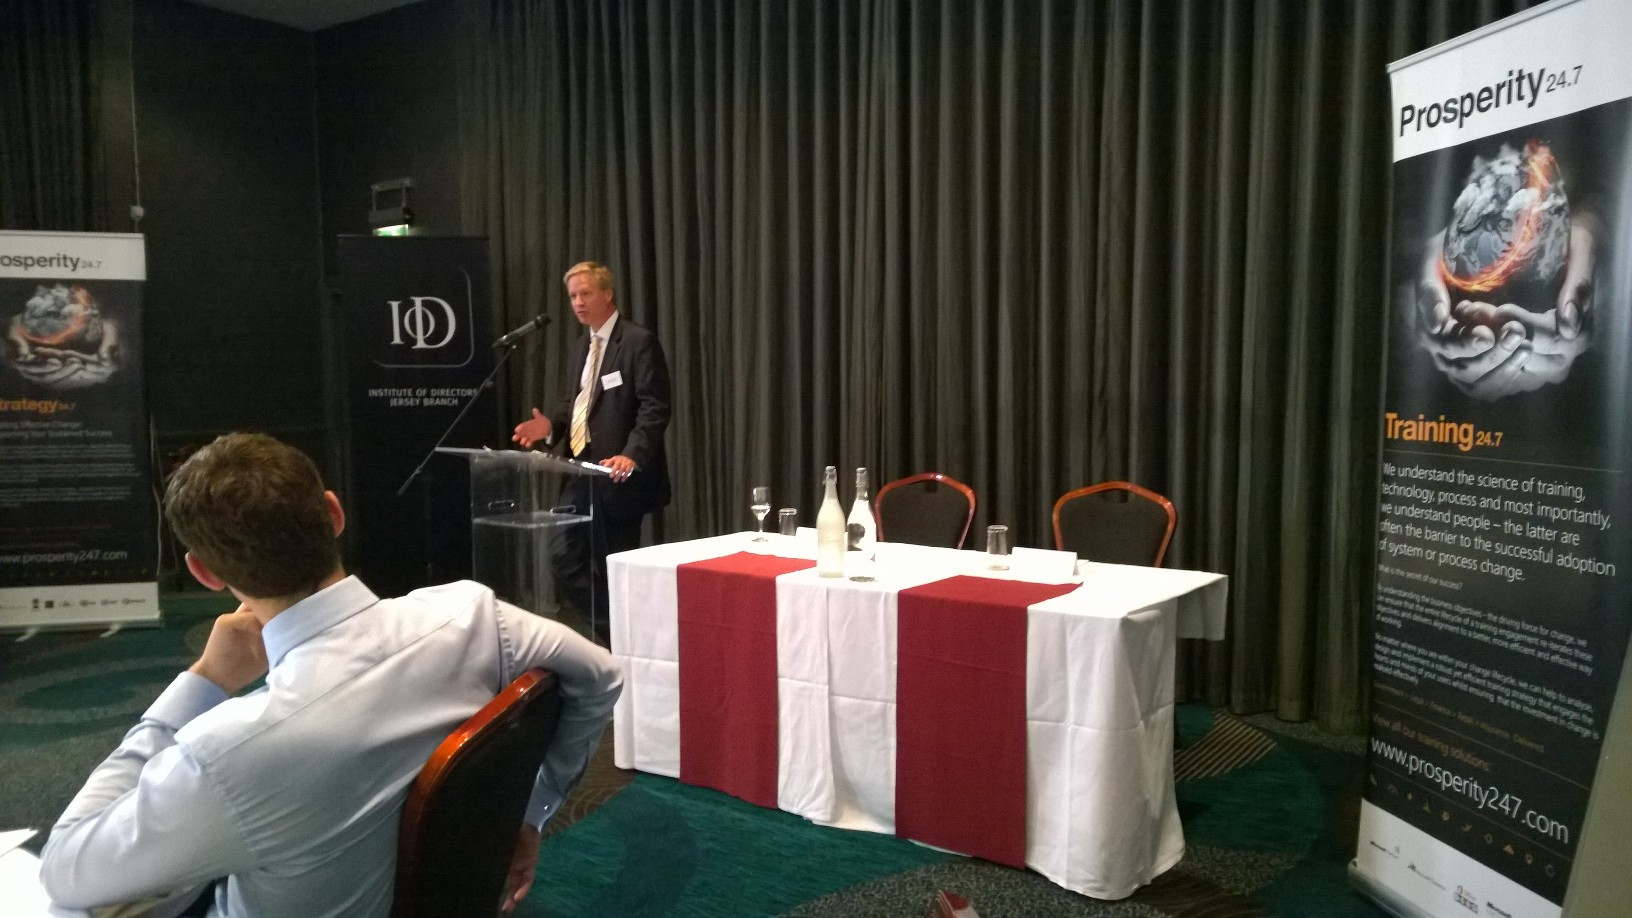 IoD Jersey Prosperity 247 Doug Bannister